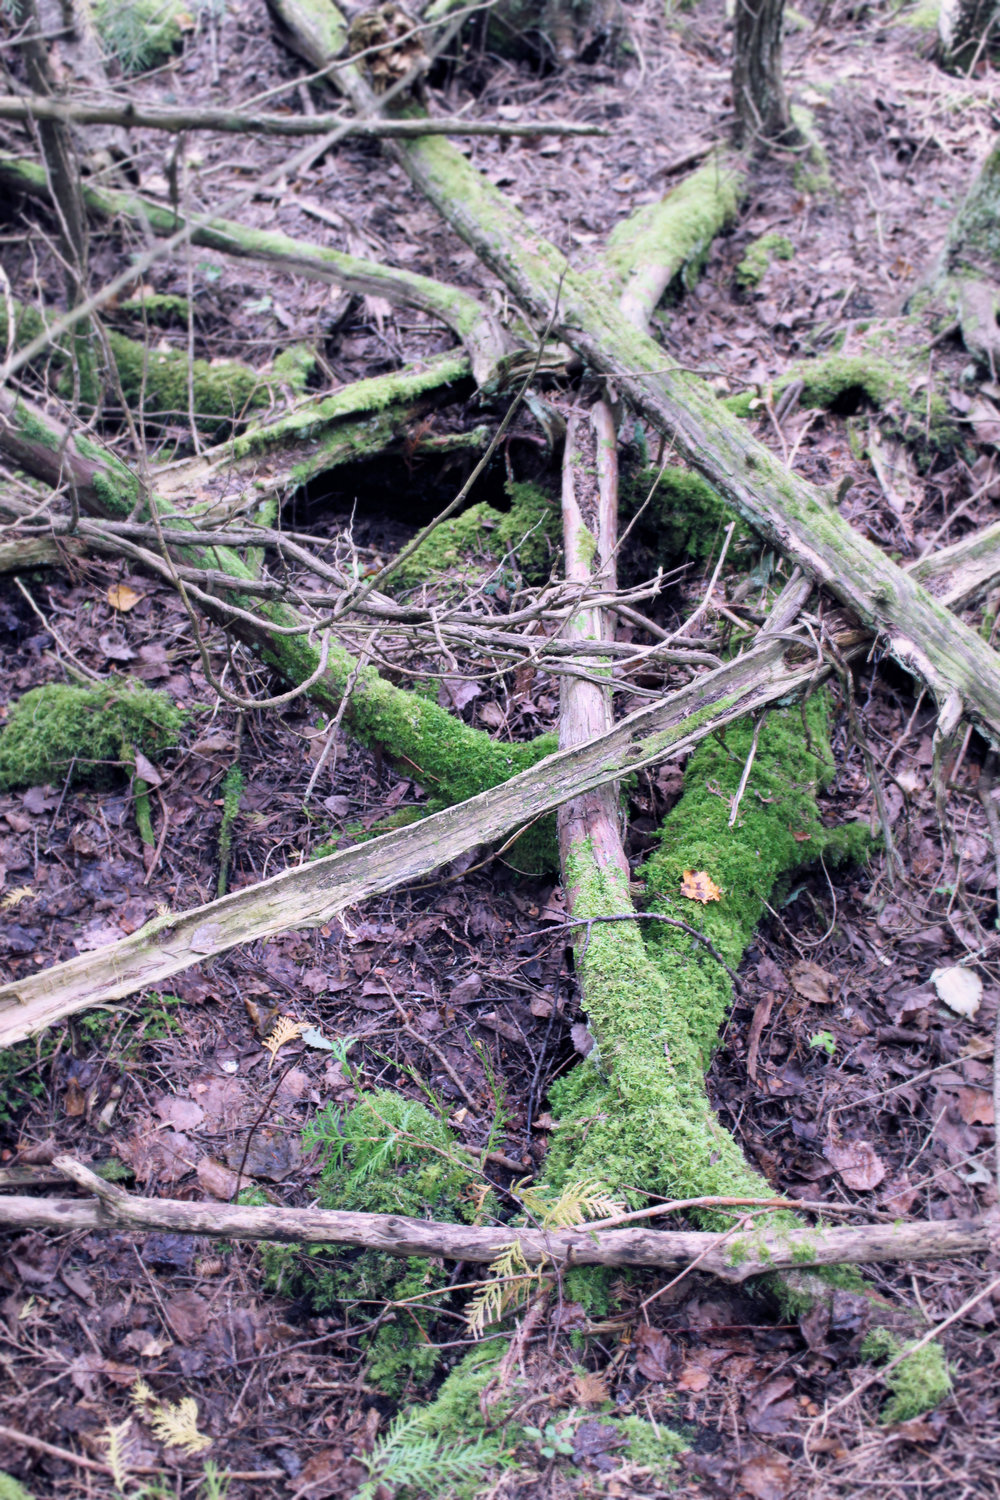 Criss-crossed logs that are covered in moss create a strange pattern in the woods. It almost looks as though they form a spiritual circle of some sort for spells or magical rituals! Perhaps they were left there by and elf?